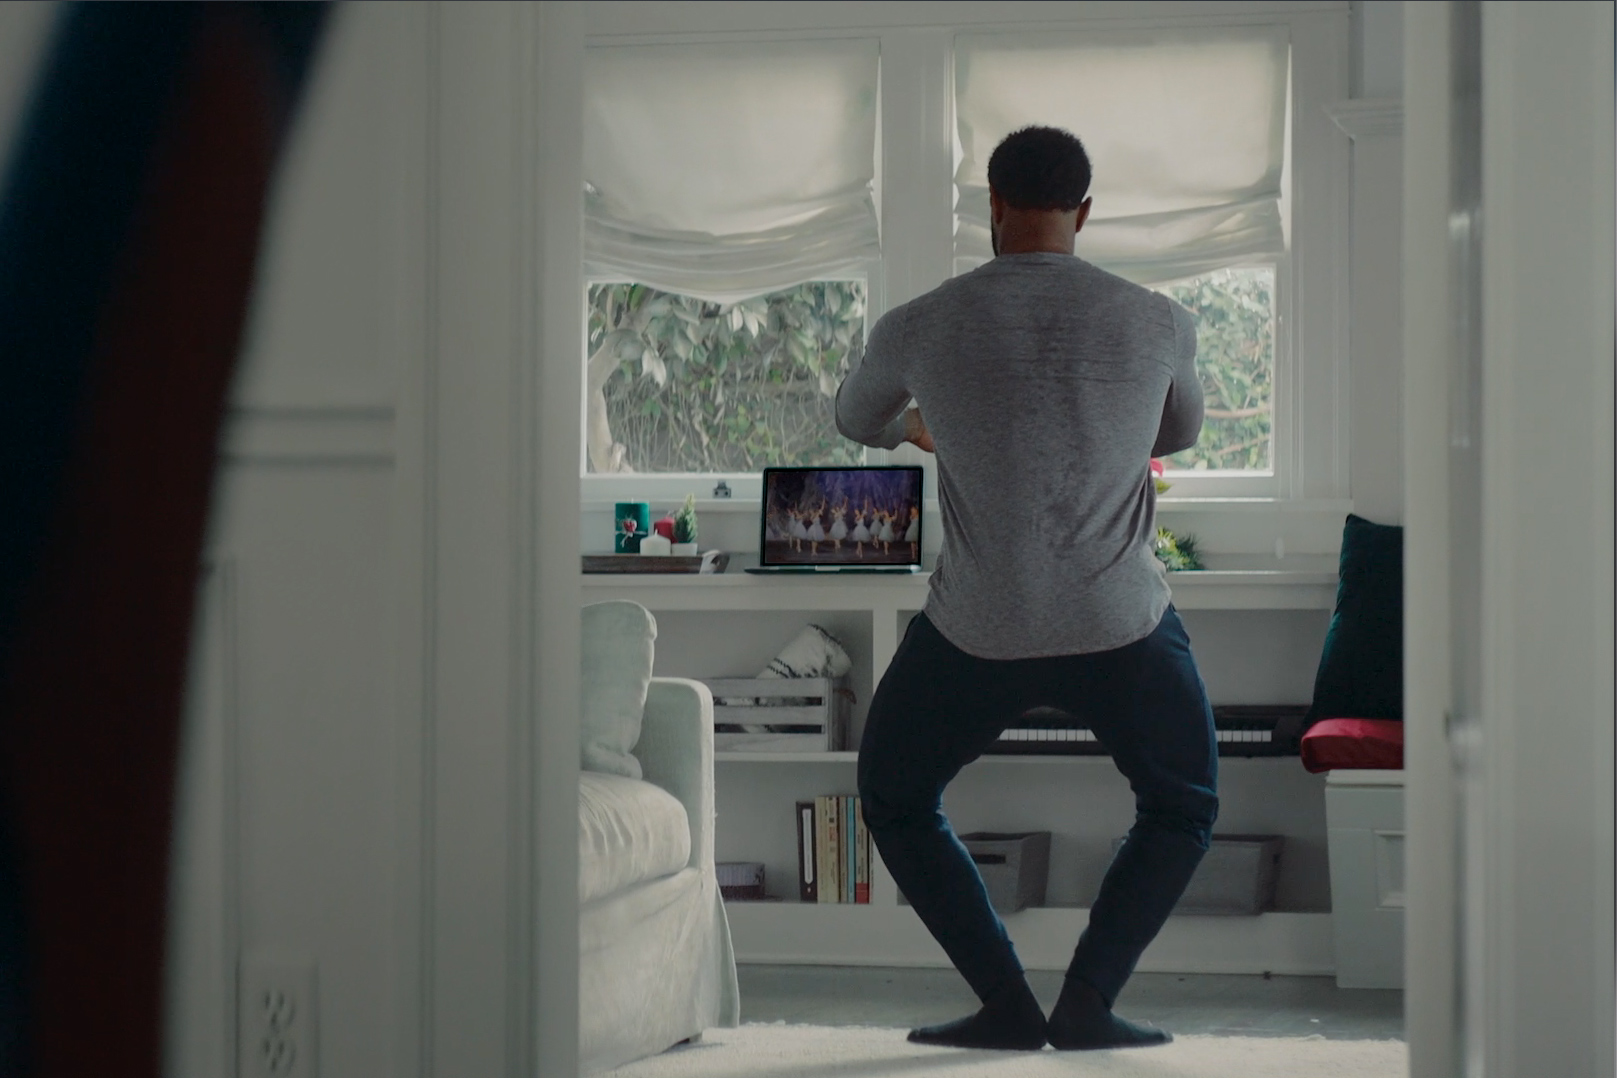 PayPal releases a sentimental holiday spot as it rides the e-commerce wave